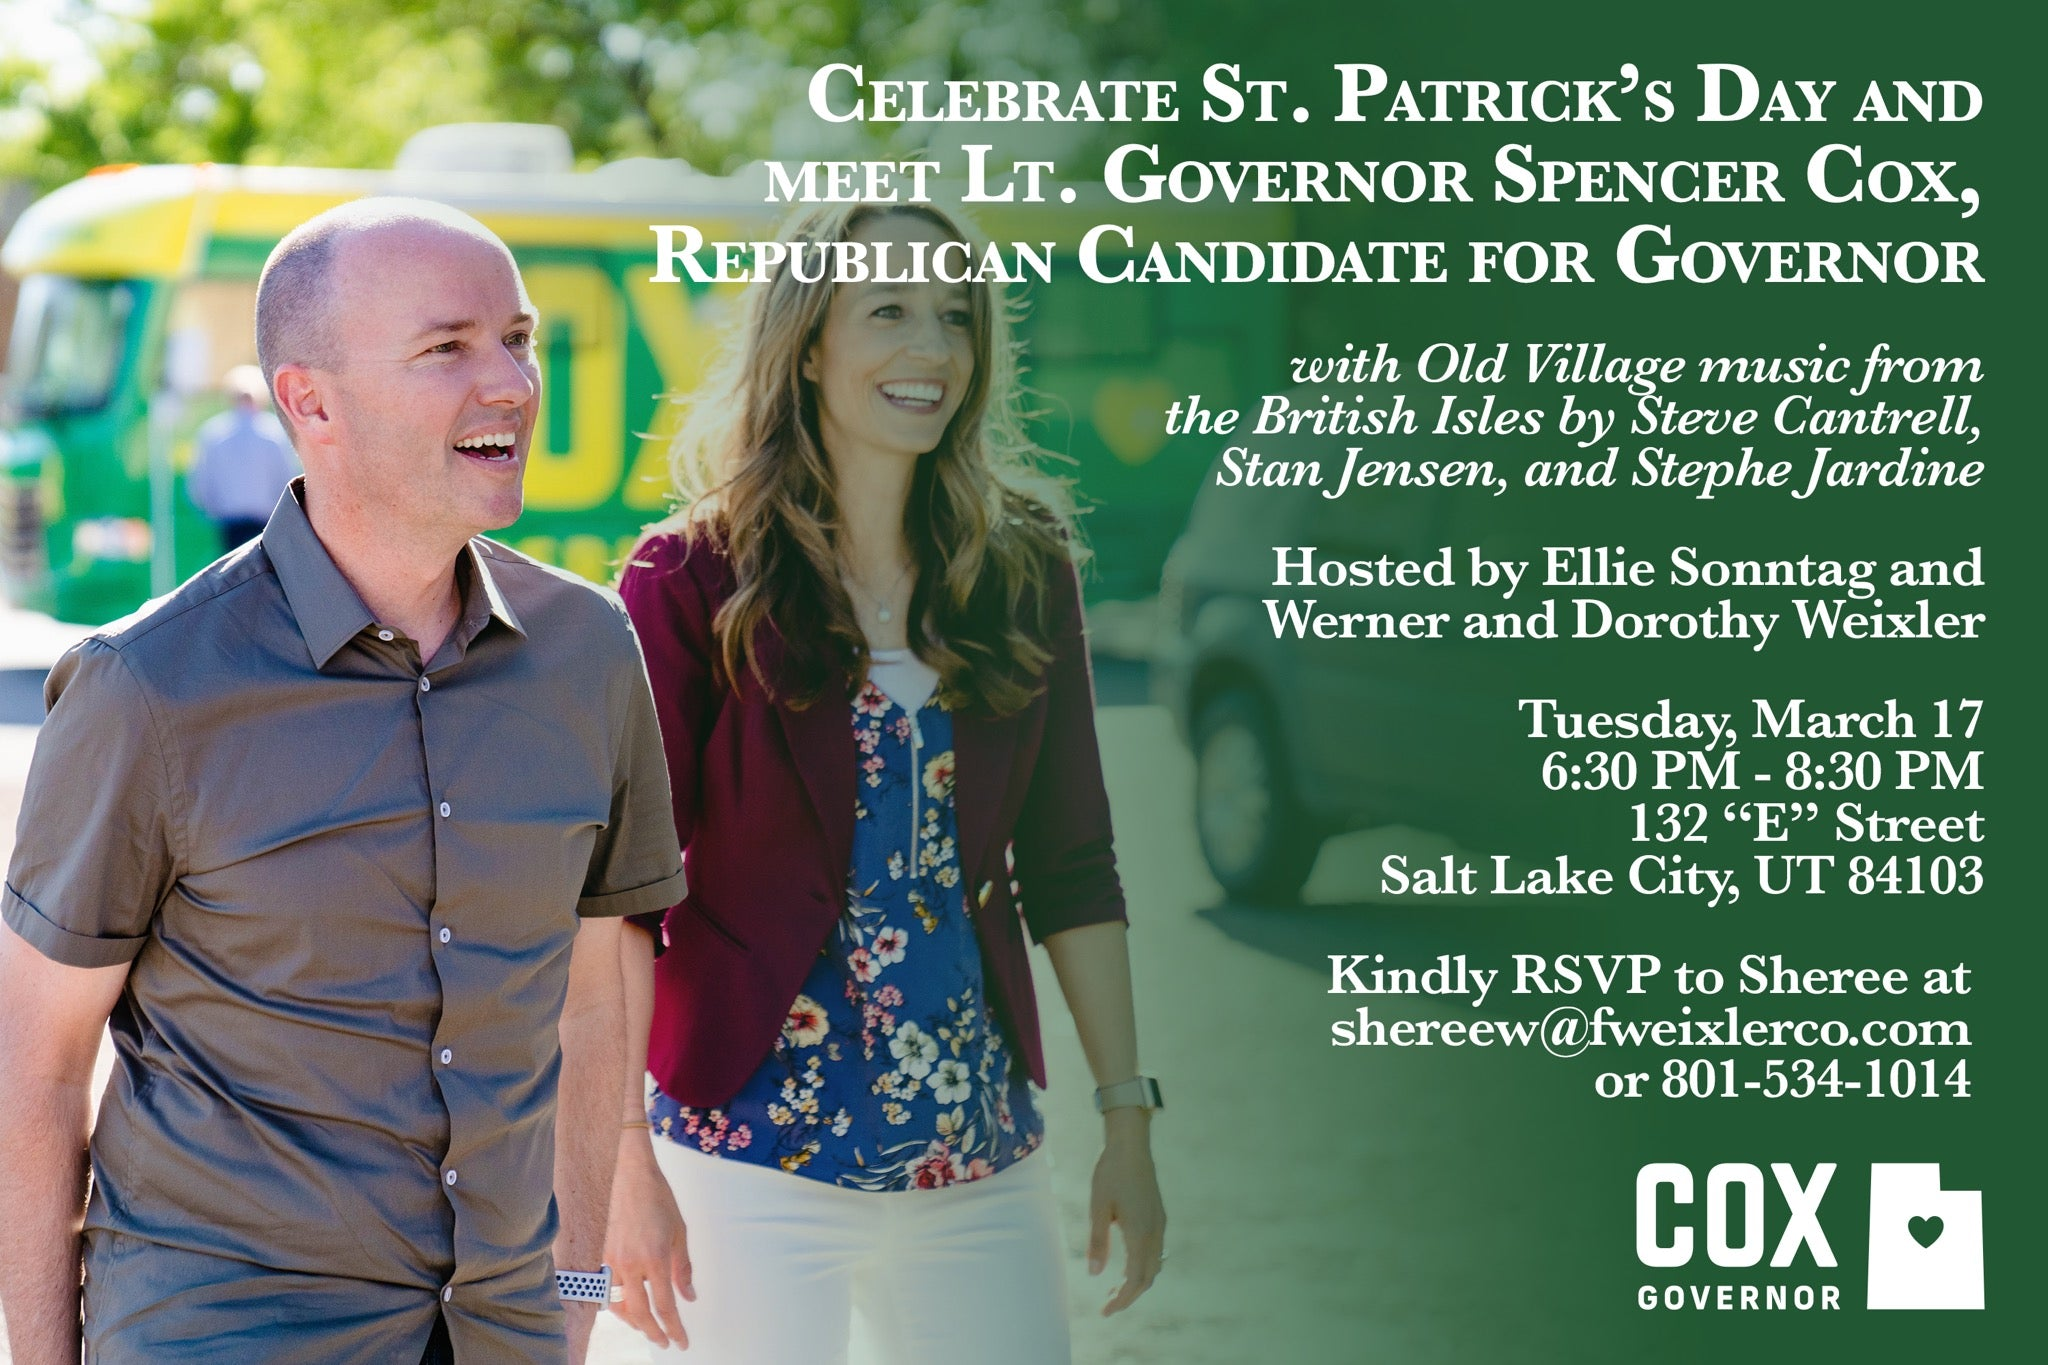 St. Patrick's Day Meet & Greet with Lt. Governor Spencer Cox